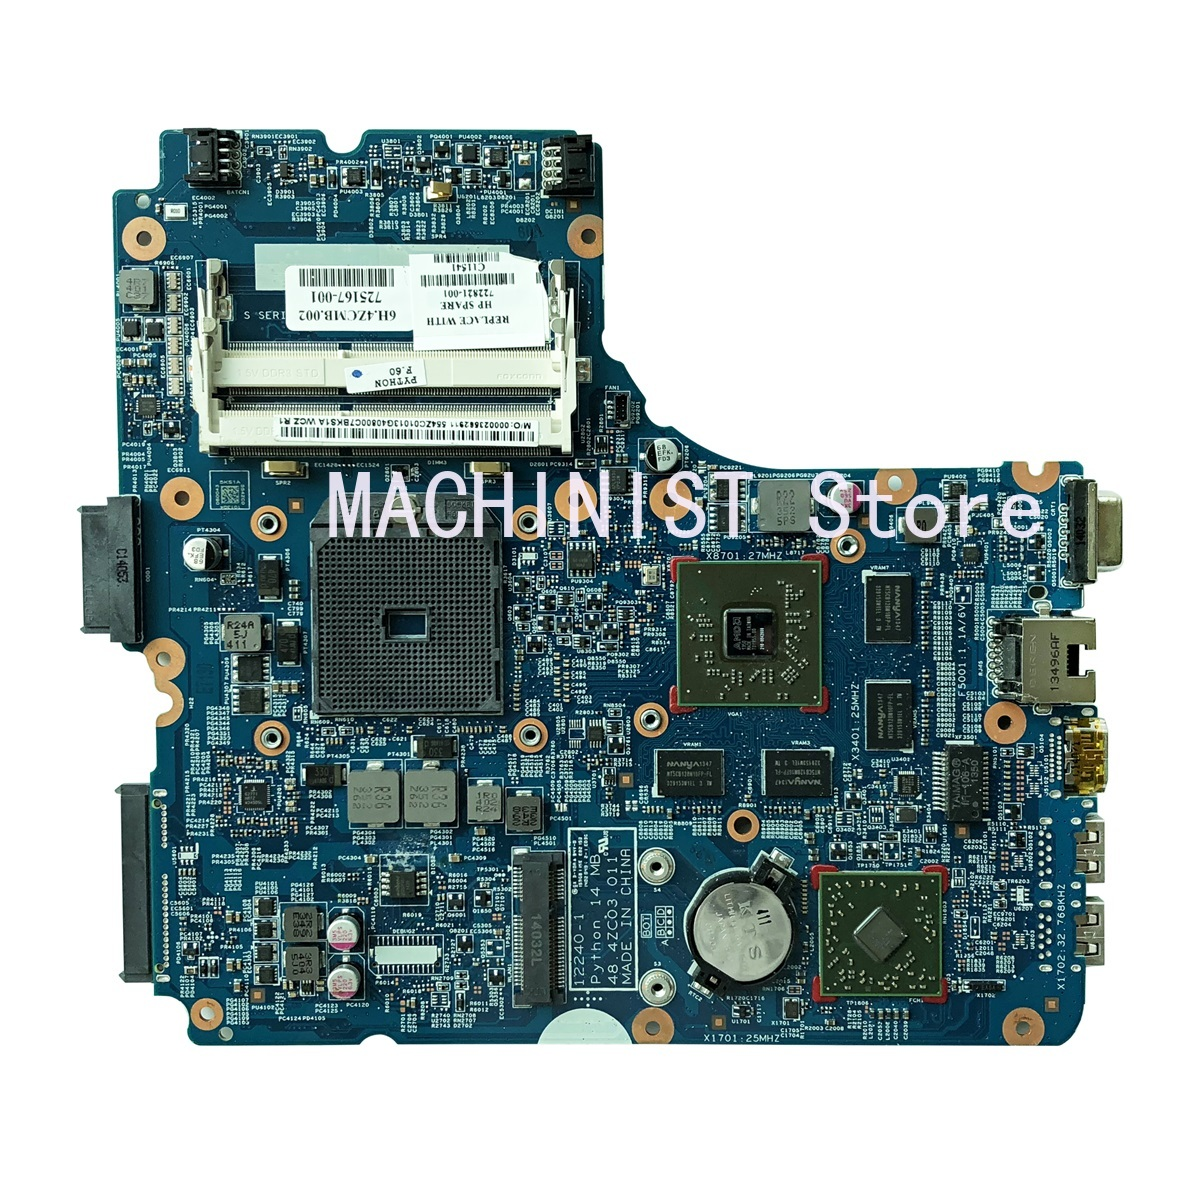 445 G1 Laptop <font><b>Motherboard</b></font> For <font><b>HP</b></font> <font><b>455</b></font> G1 <font><b>455</b></font>-G1 445-G1 <font><b>motherboard</b></font> 48.4ZCW03.011 12240-1 722821-001 722821-501 722821-601 image